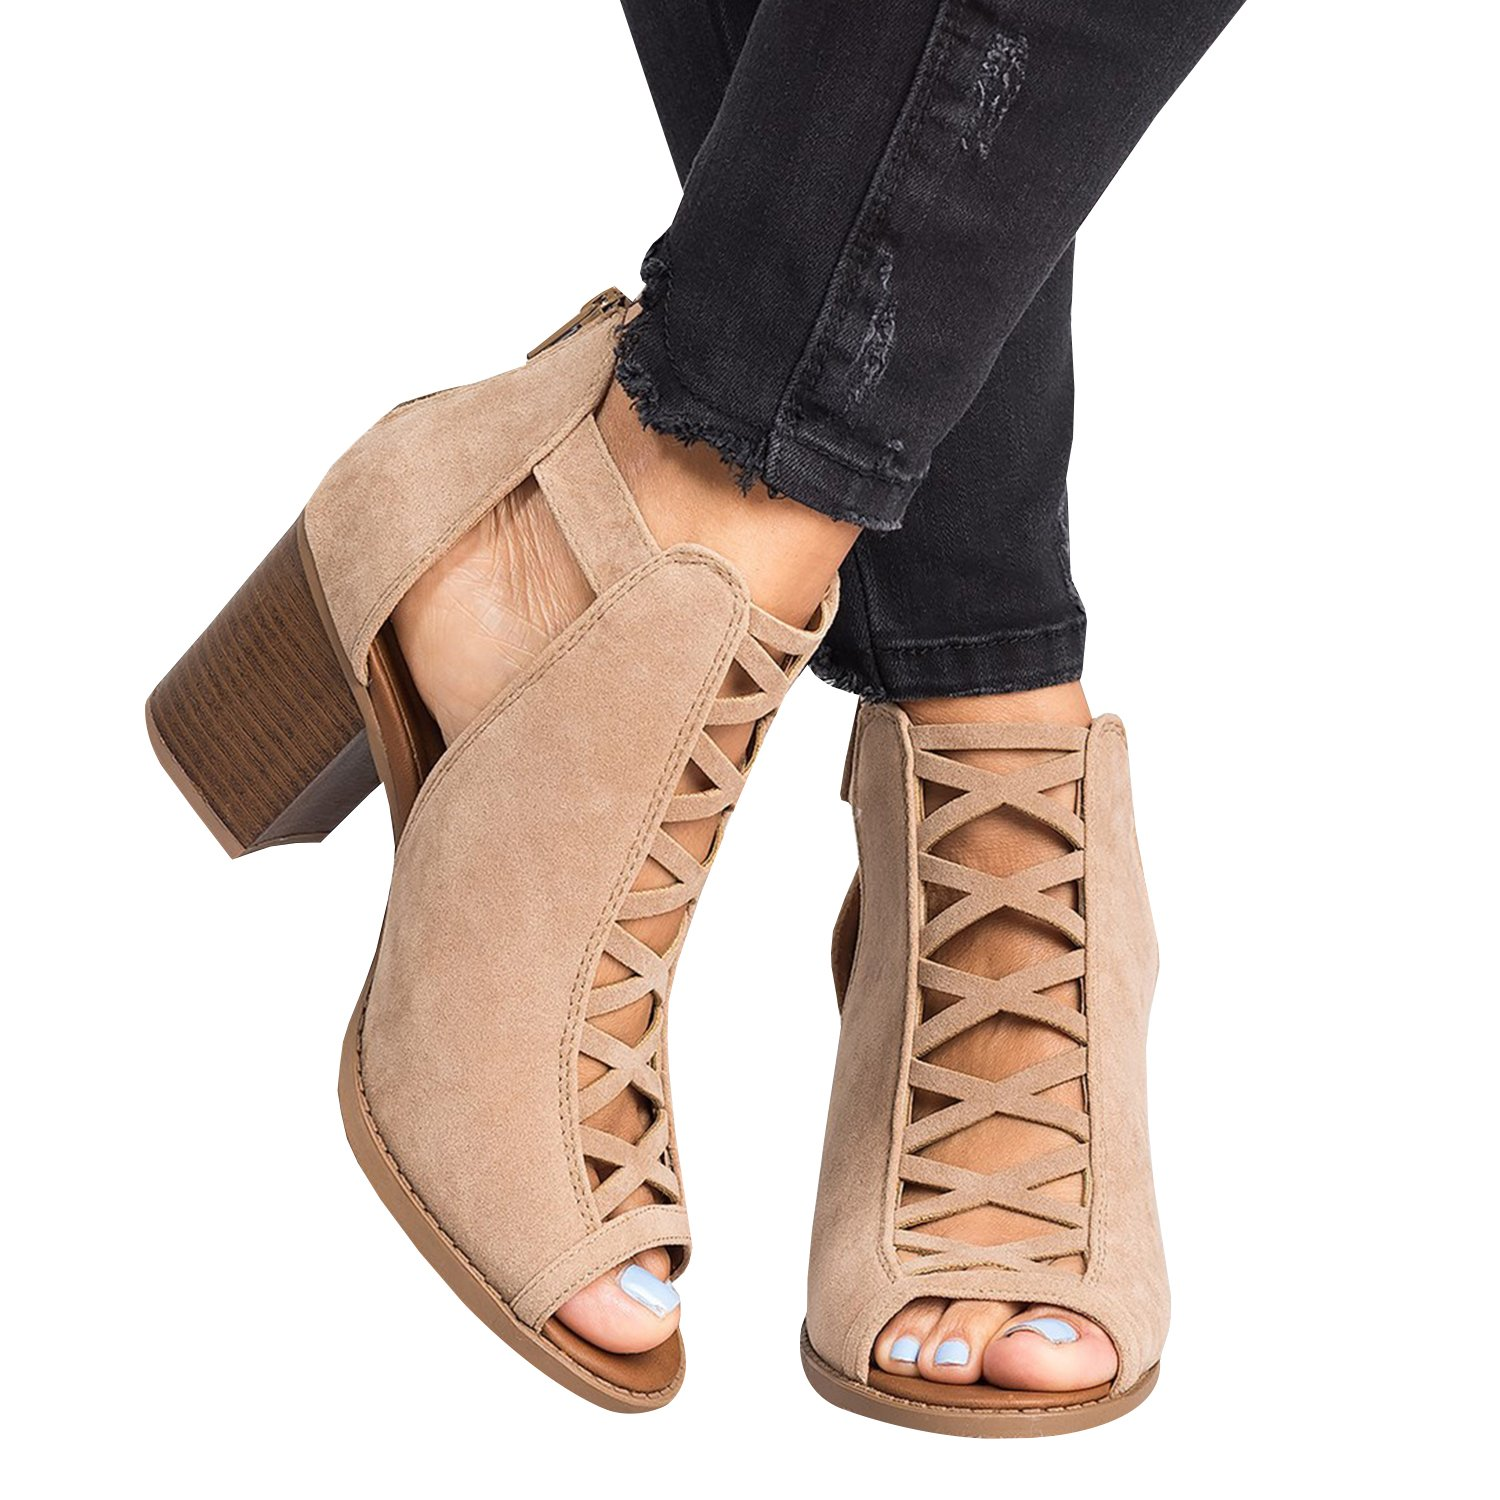 Syktkmx Womens Cutout Open Toe Bootie Sandals Chunky Block High Heel Pumps Ankle Boots